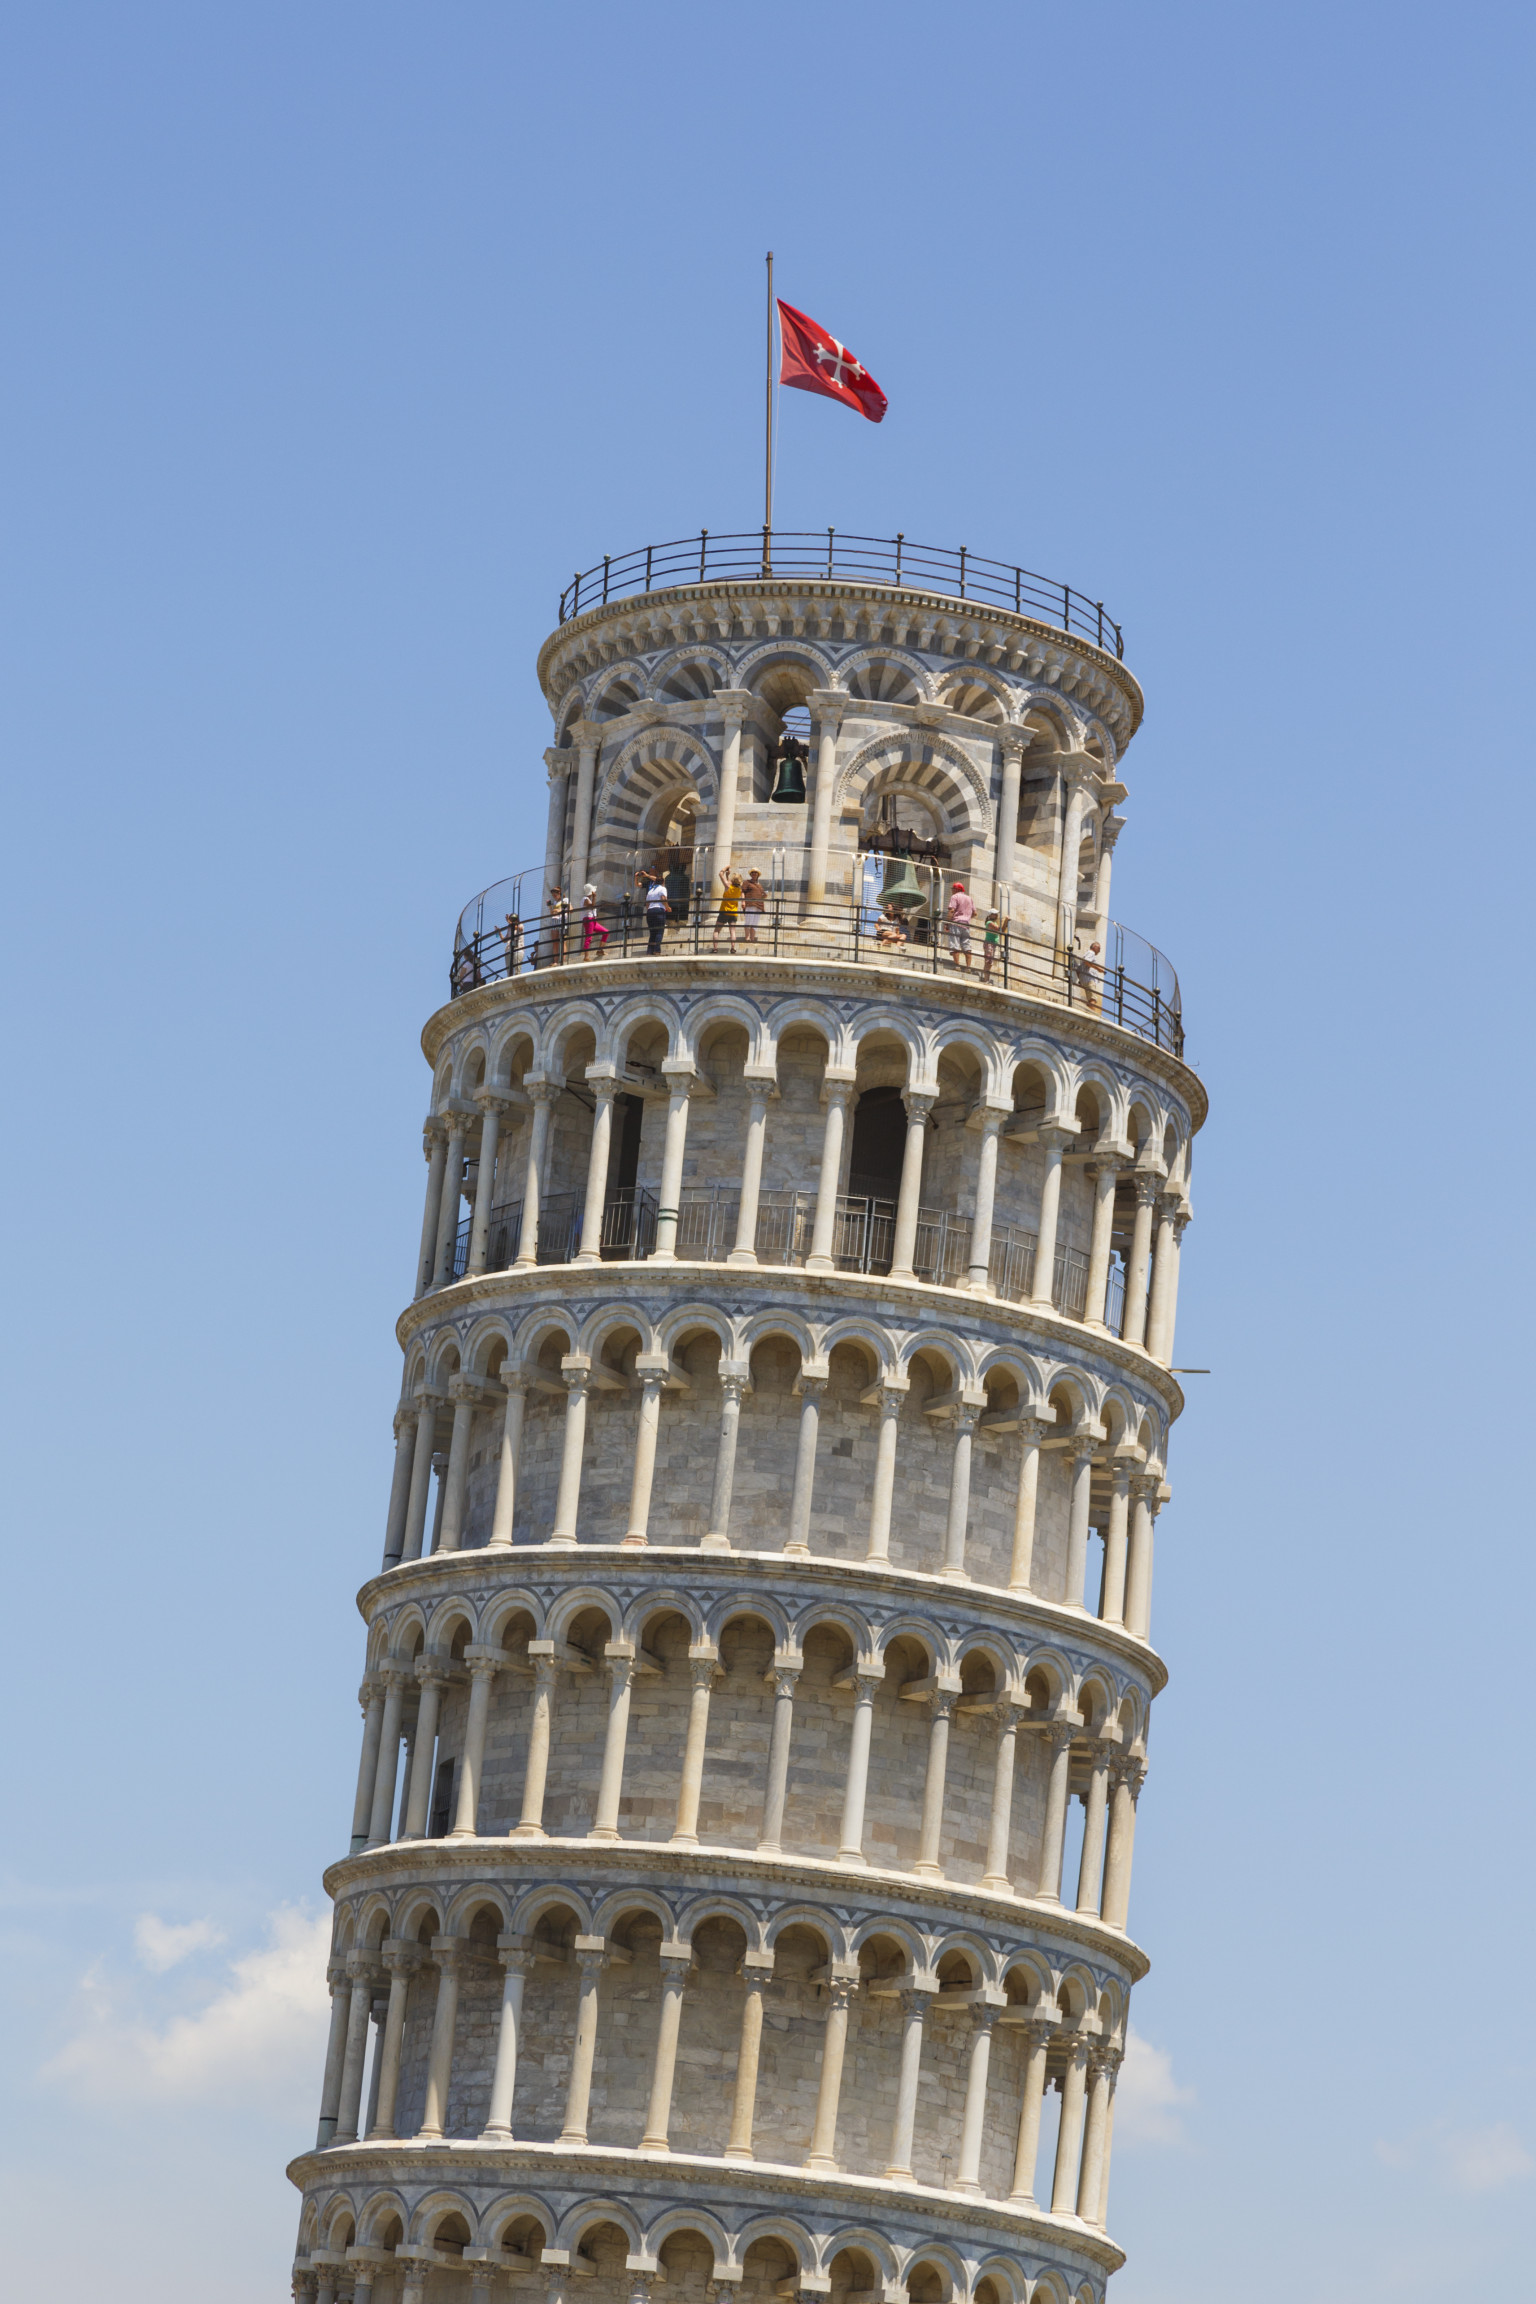 An analysis of the leaning tower of pisa